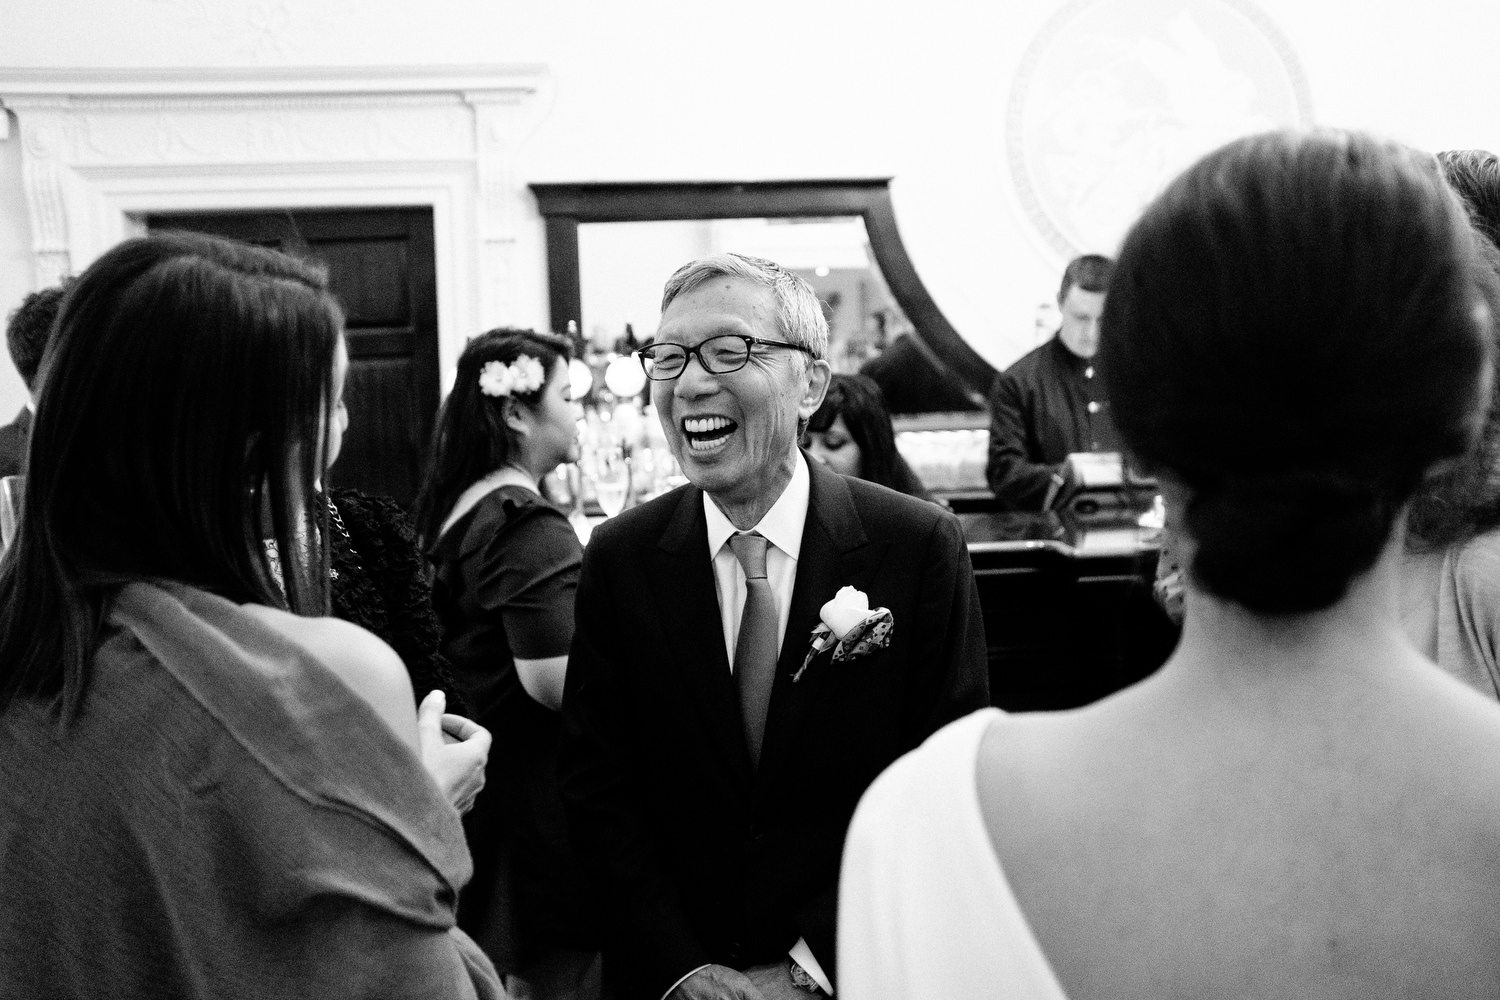 dmp0405_photographer_wedding_dublin_david_mcclelland_candid_photography_fujifilm_shelbourne_reception_documentary